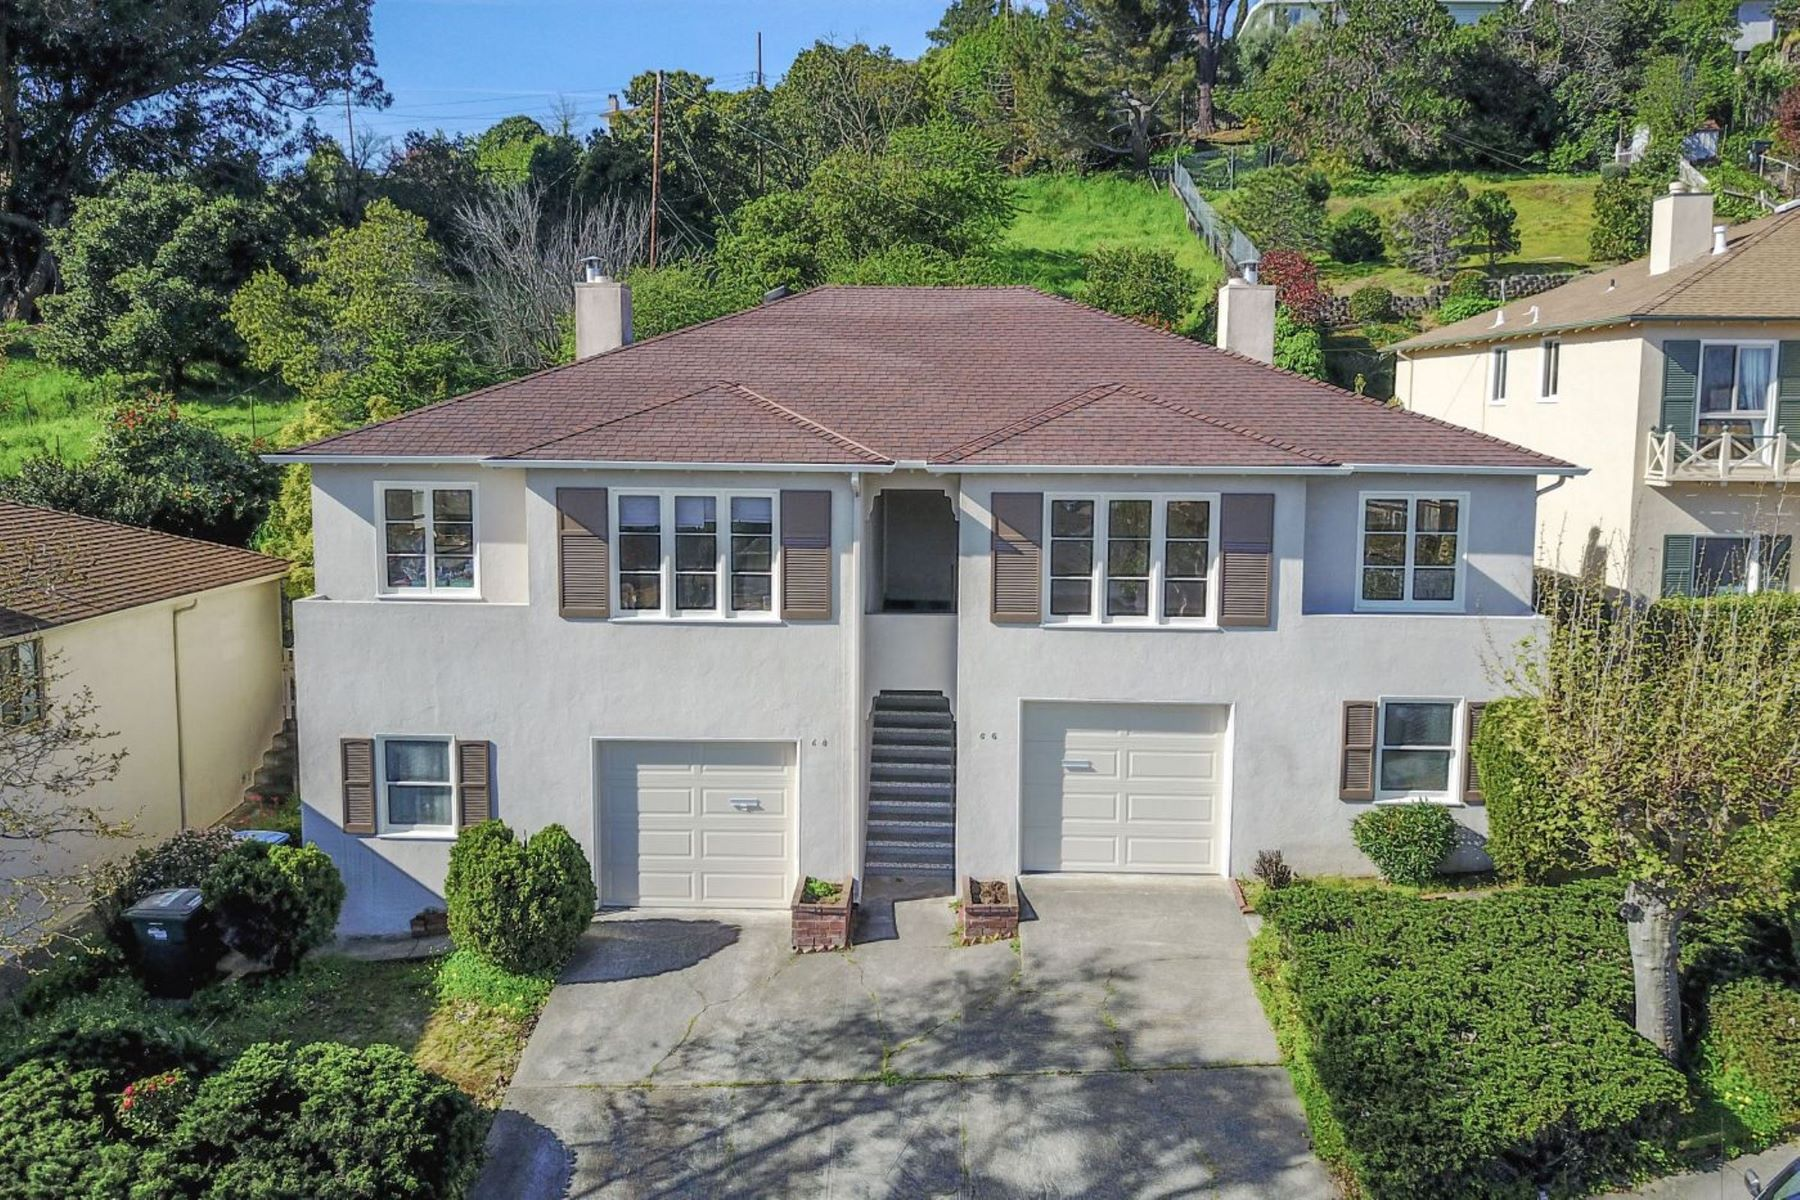 Duplex for Sale at 66-68 Elm Street San Carlos, California 94070 United States